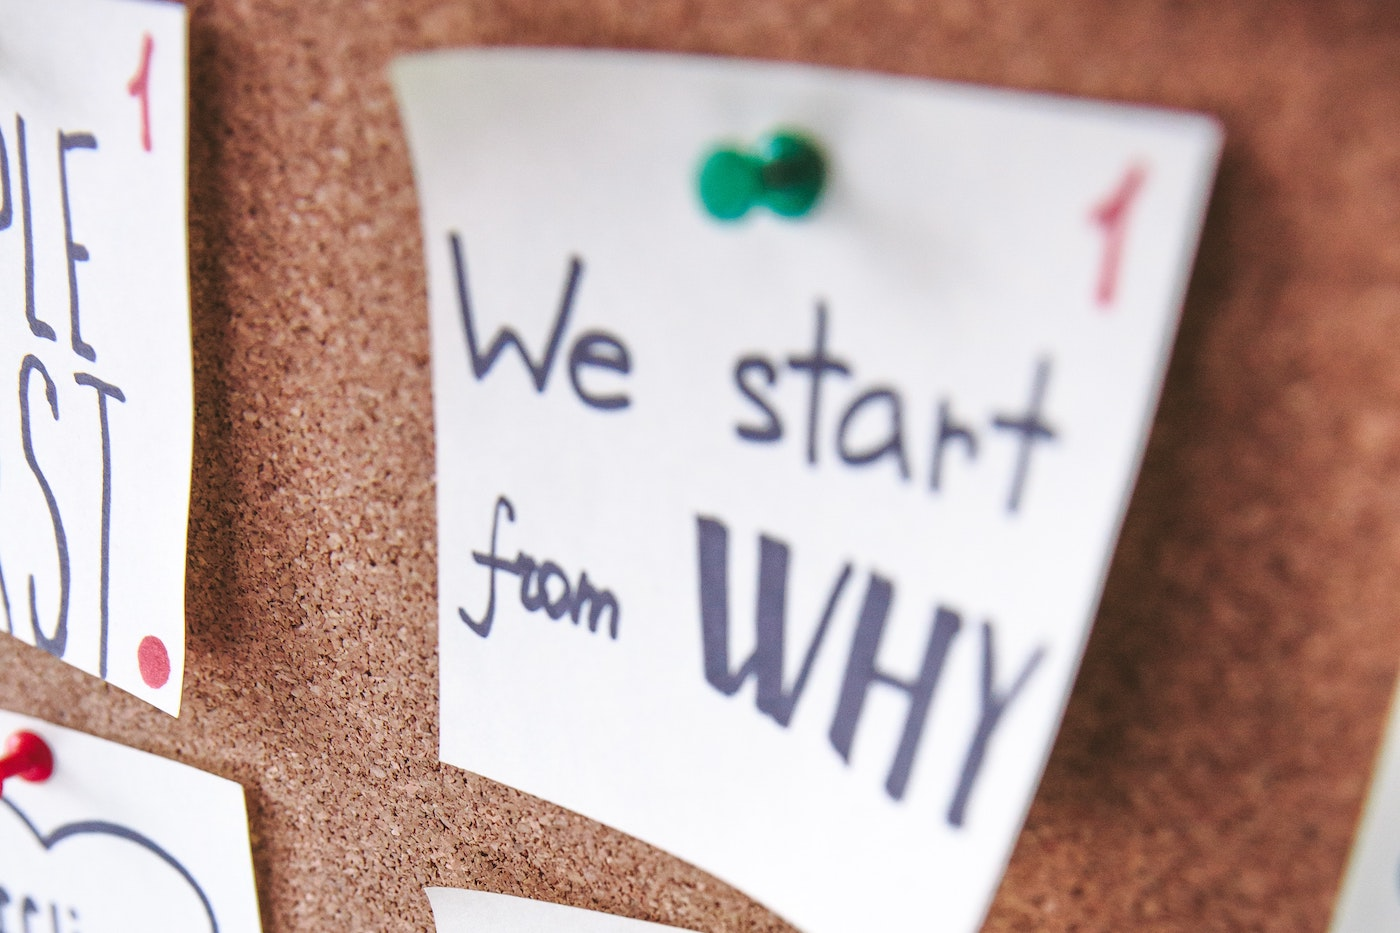 Start with your WHY!